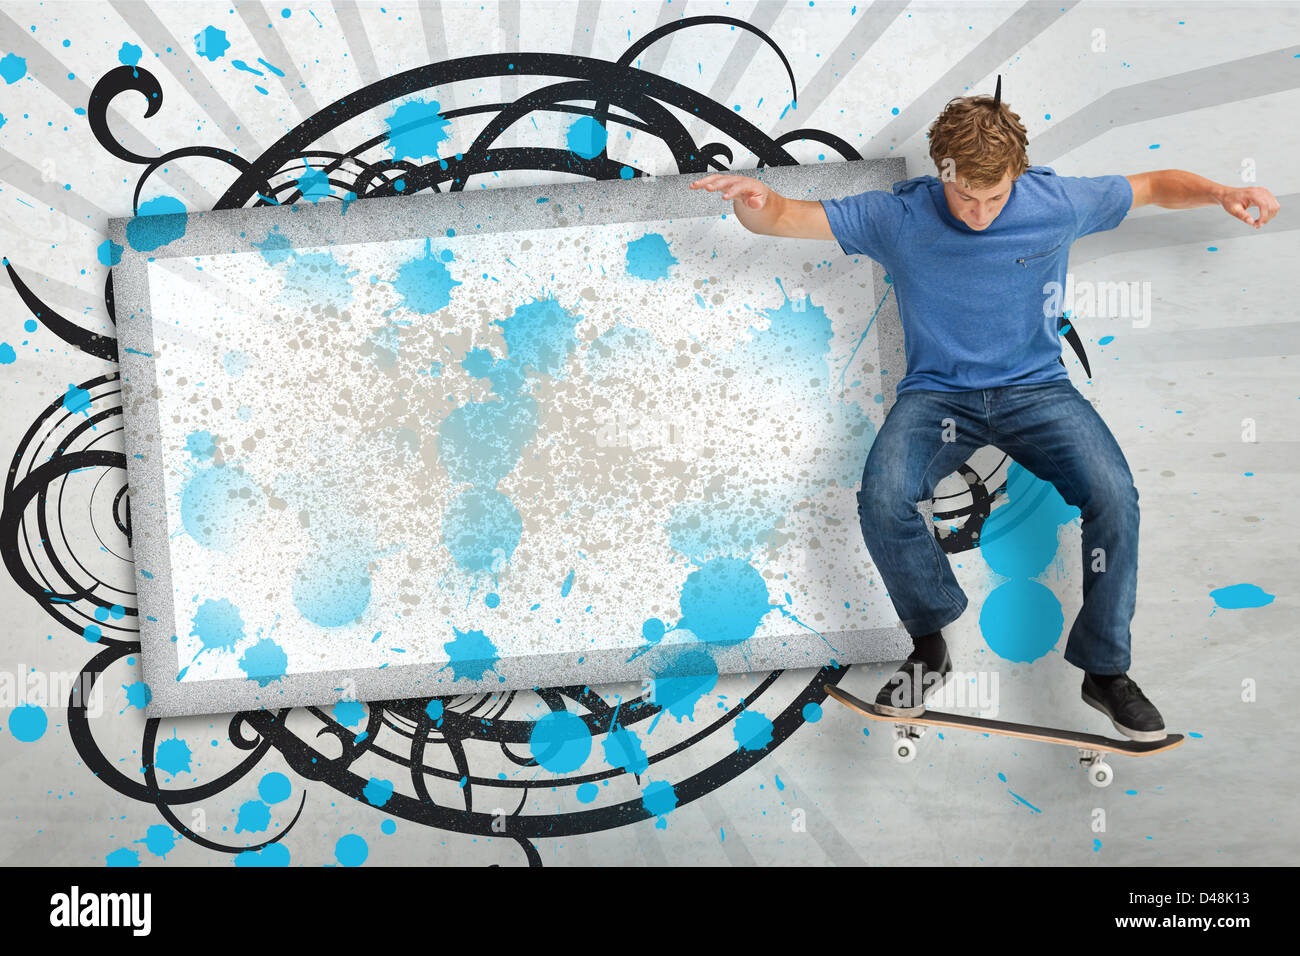 Skateboarder mid ollie in front of copy space screen Stock Photo